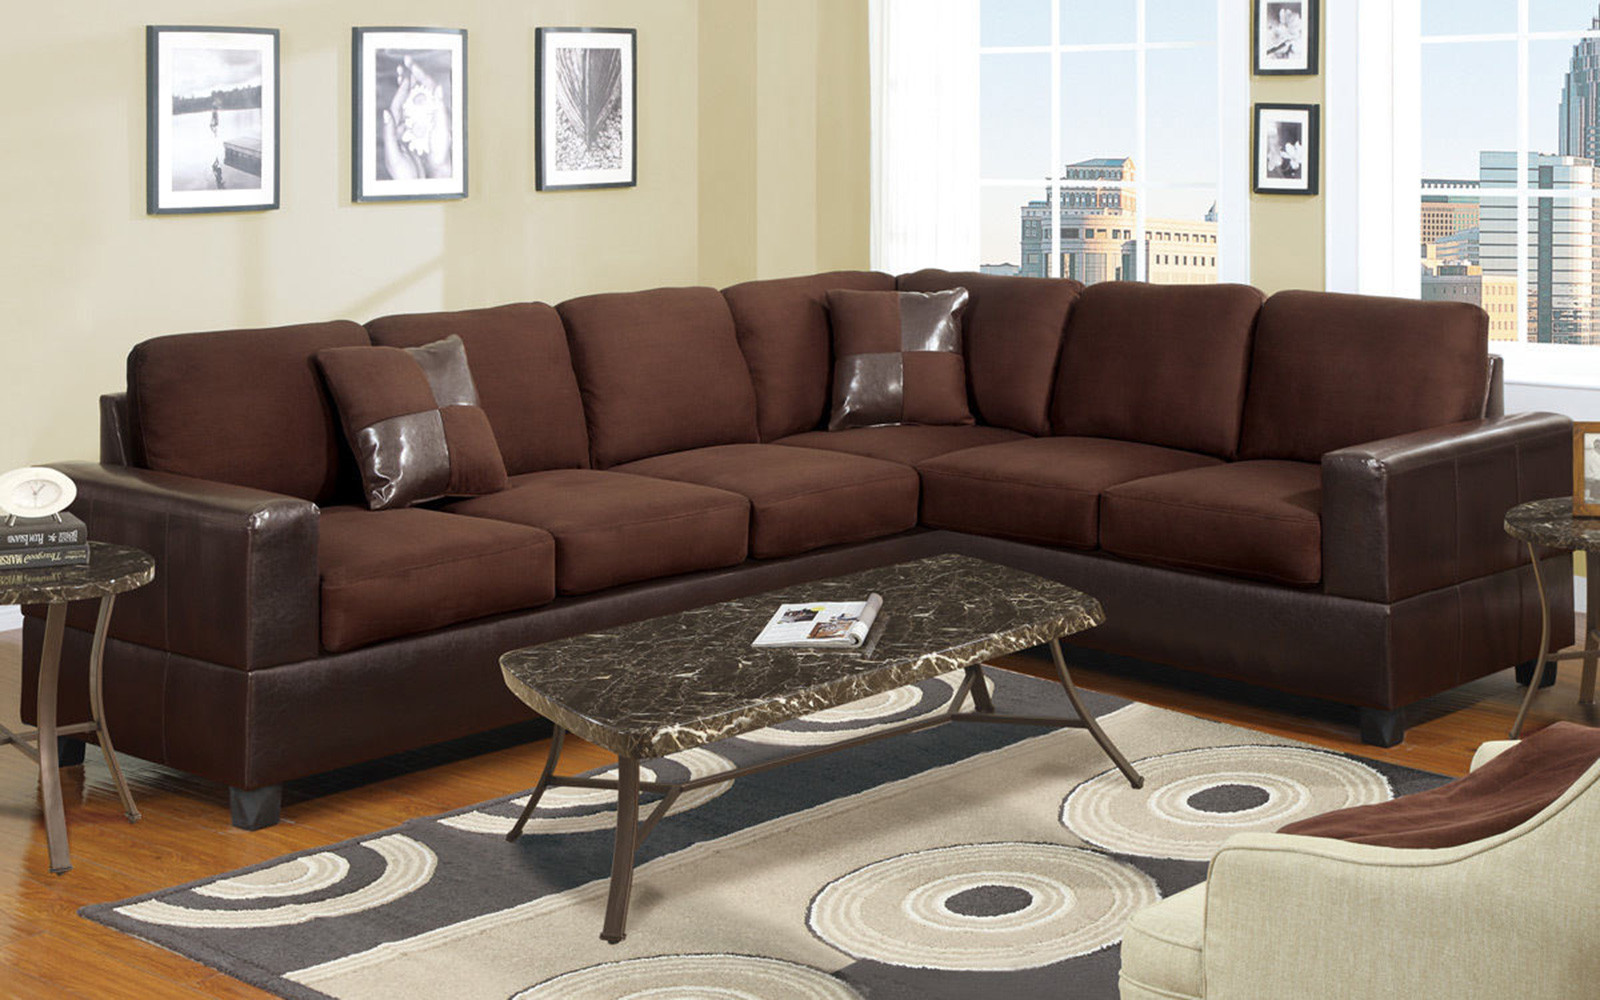 Captivating 2 Piece Modern Large Microfiber And Faux Leather Sectional Sofa